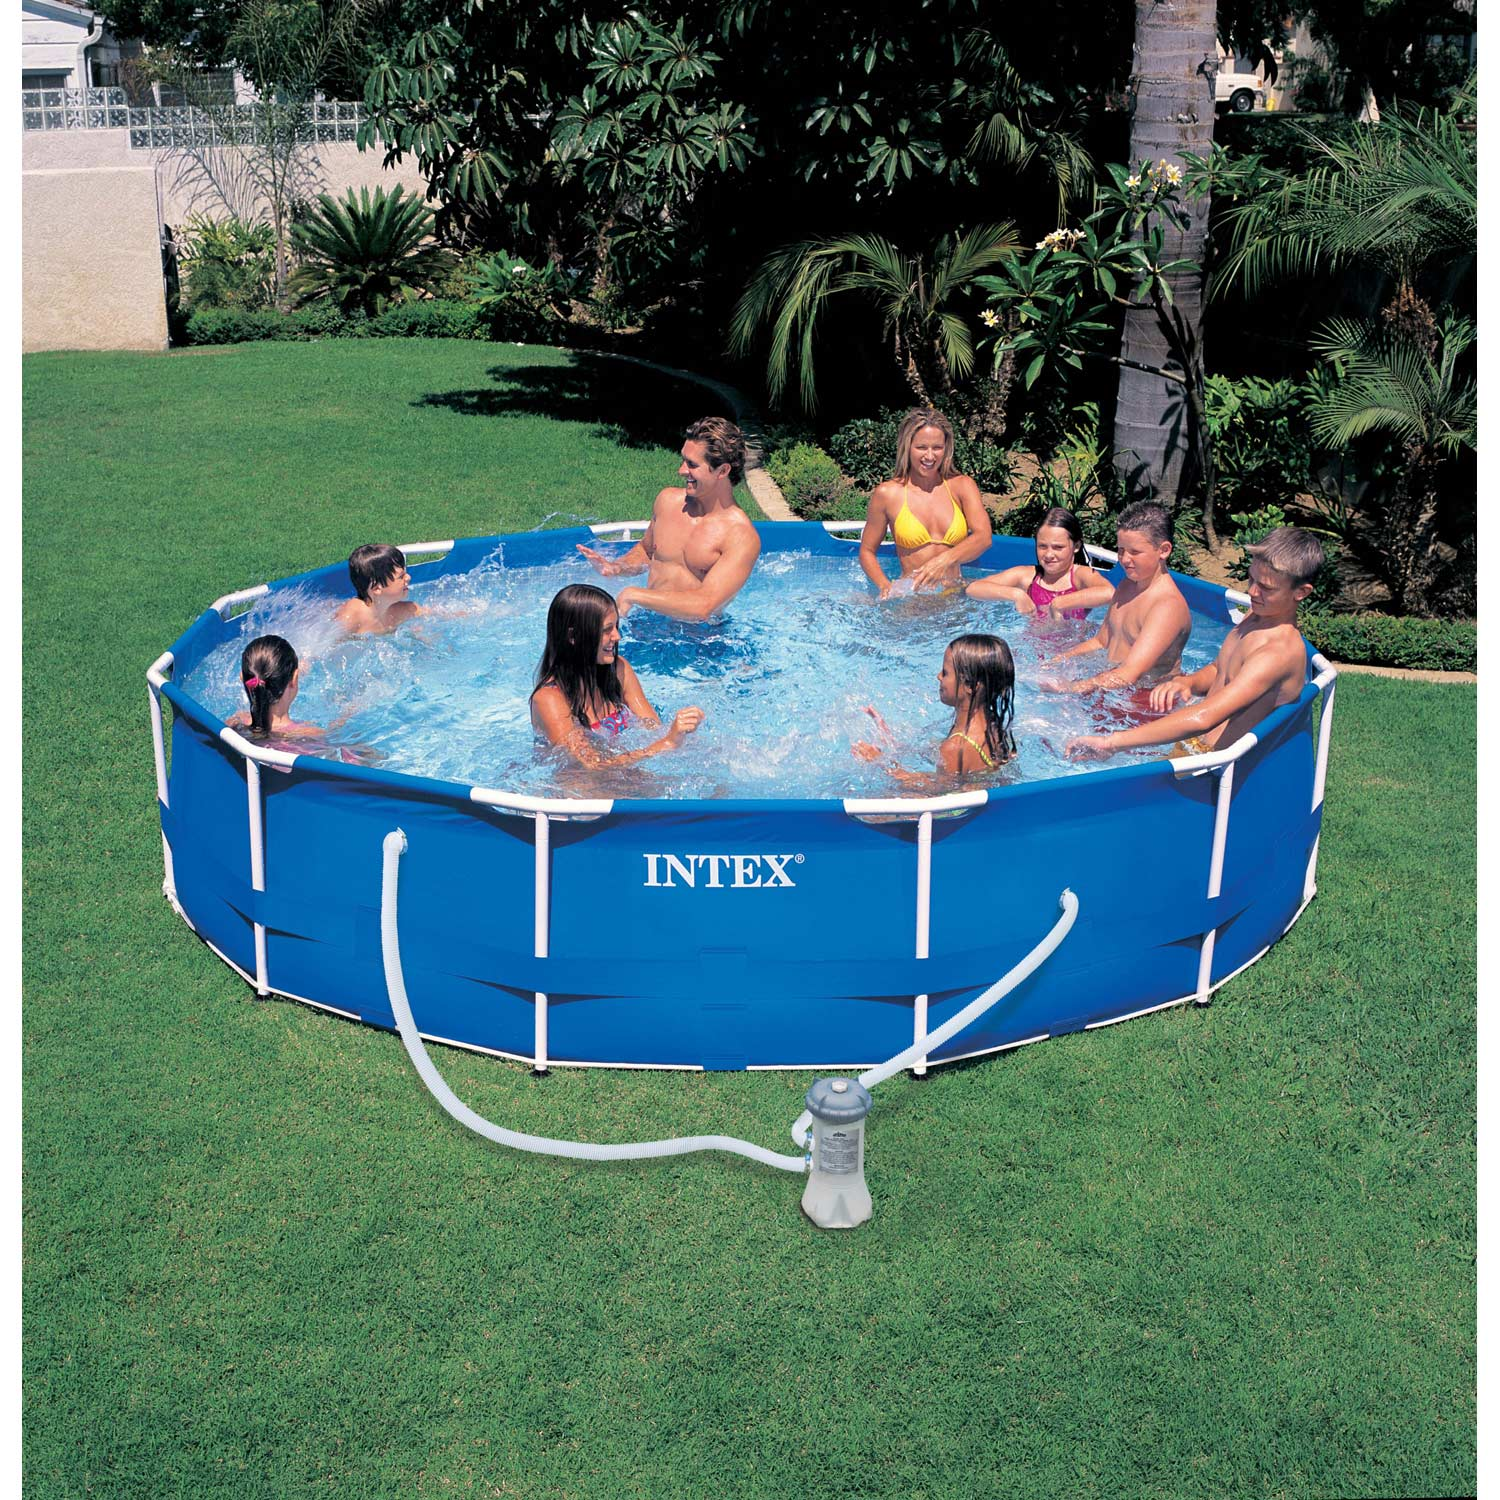 Piscine Intex Hors Sol : piscine hors sol autoportante tubulaire metal frame intex ~ Dailycaller-alerts.com Idées de Décoration